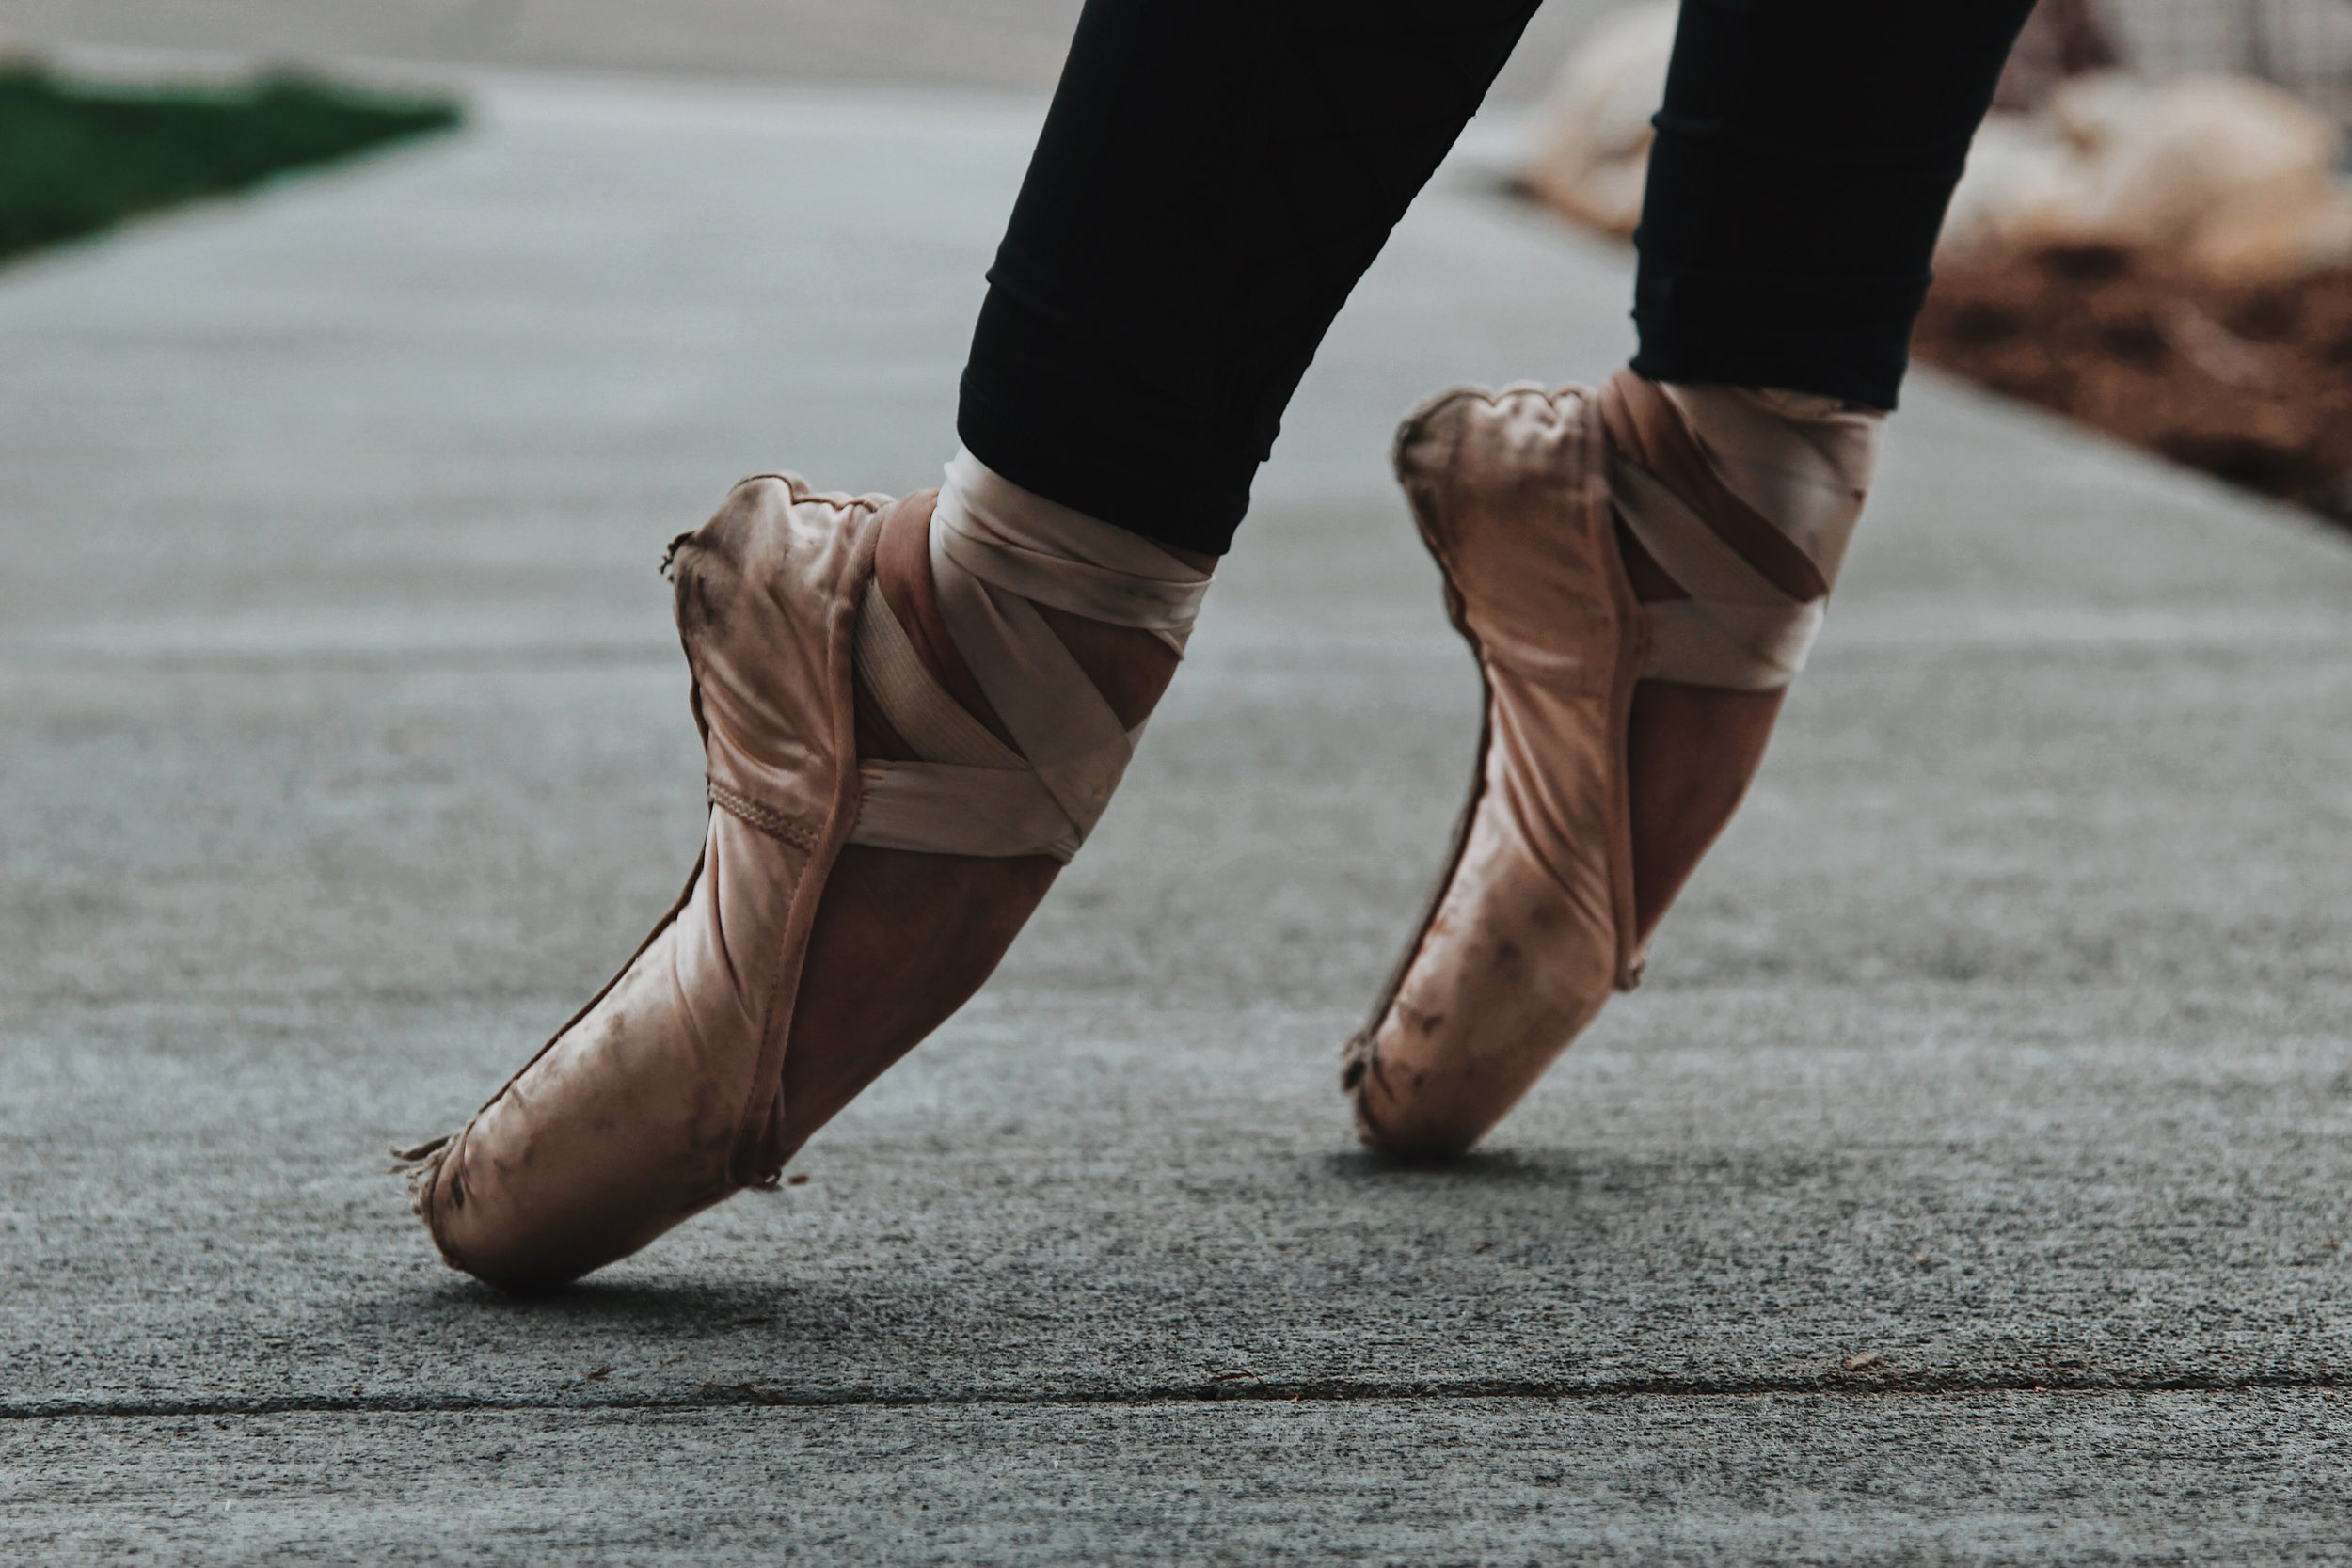 academy YOUTH BALLET - Our Academy program trains young dancers to perfect their technique in preparation for professional careers in dance.Students will train outside of Steamboat Springs in the summer in order to gain pre-professional experience and networking skills.